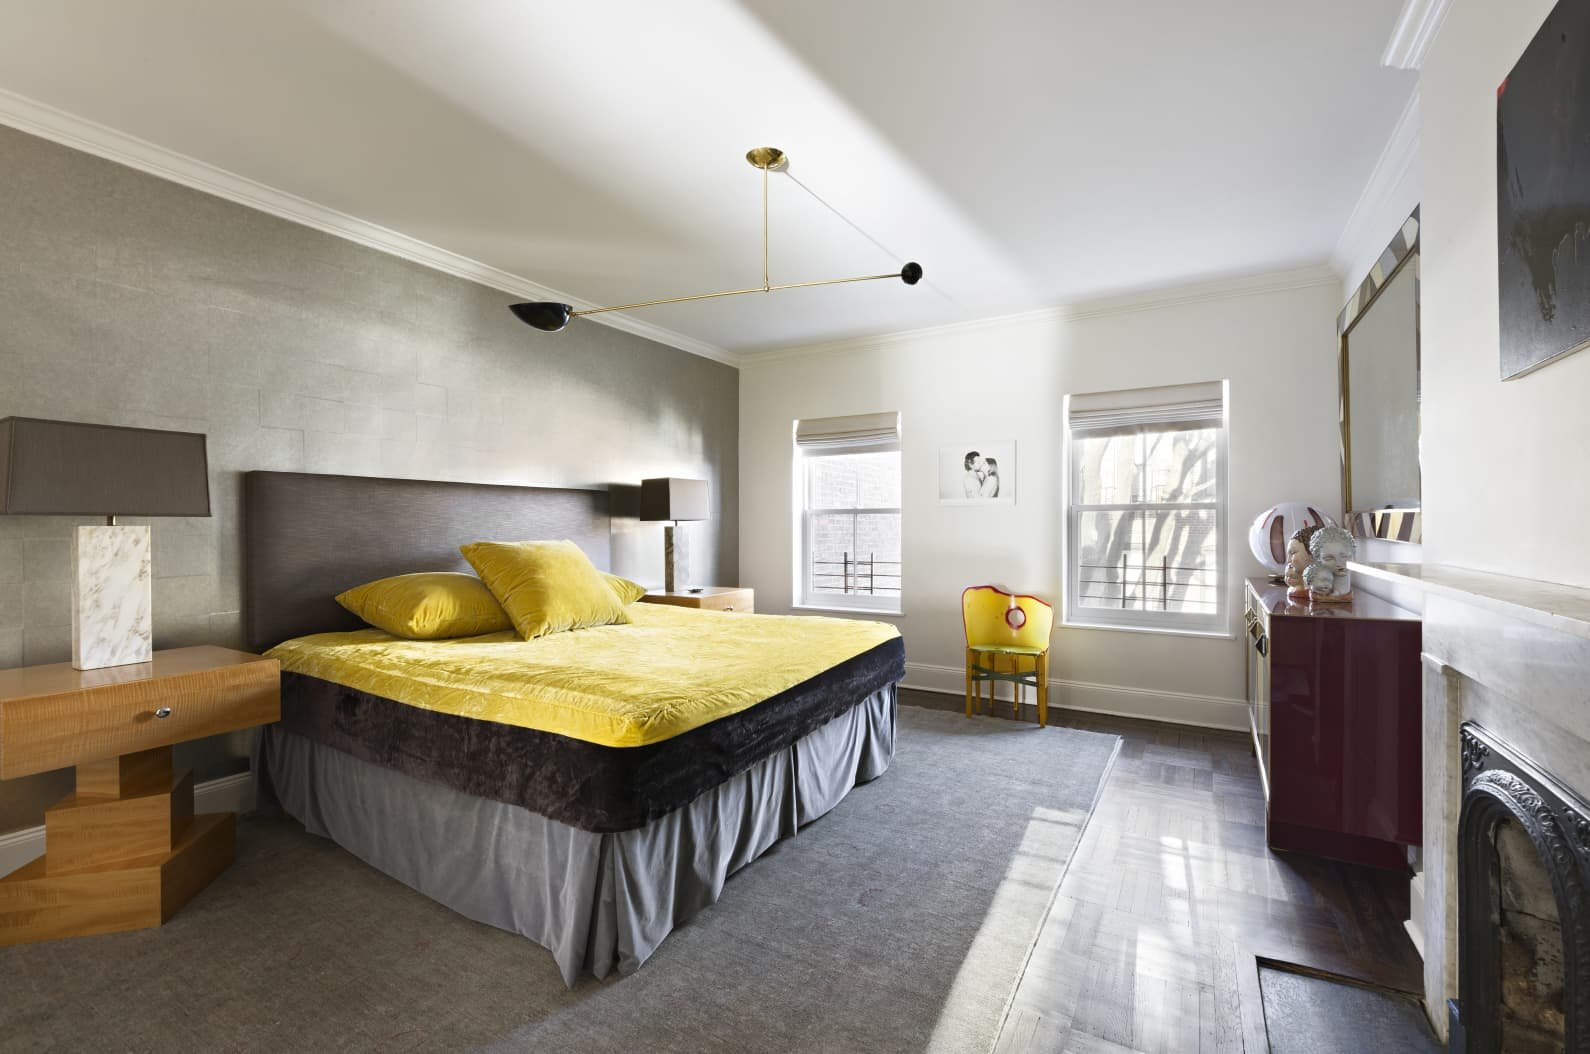 Apartamento Mary Kate Oslen en Manhattan dormitorio